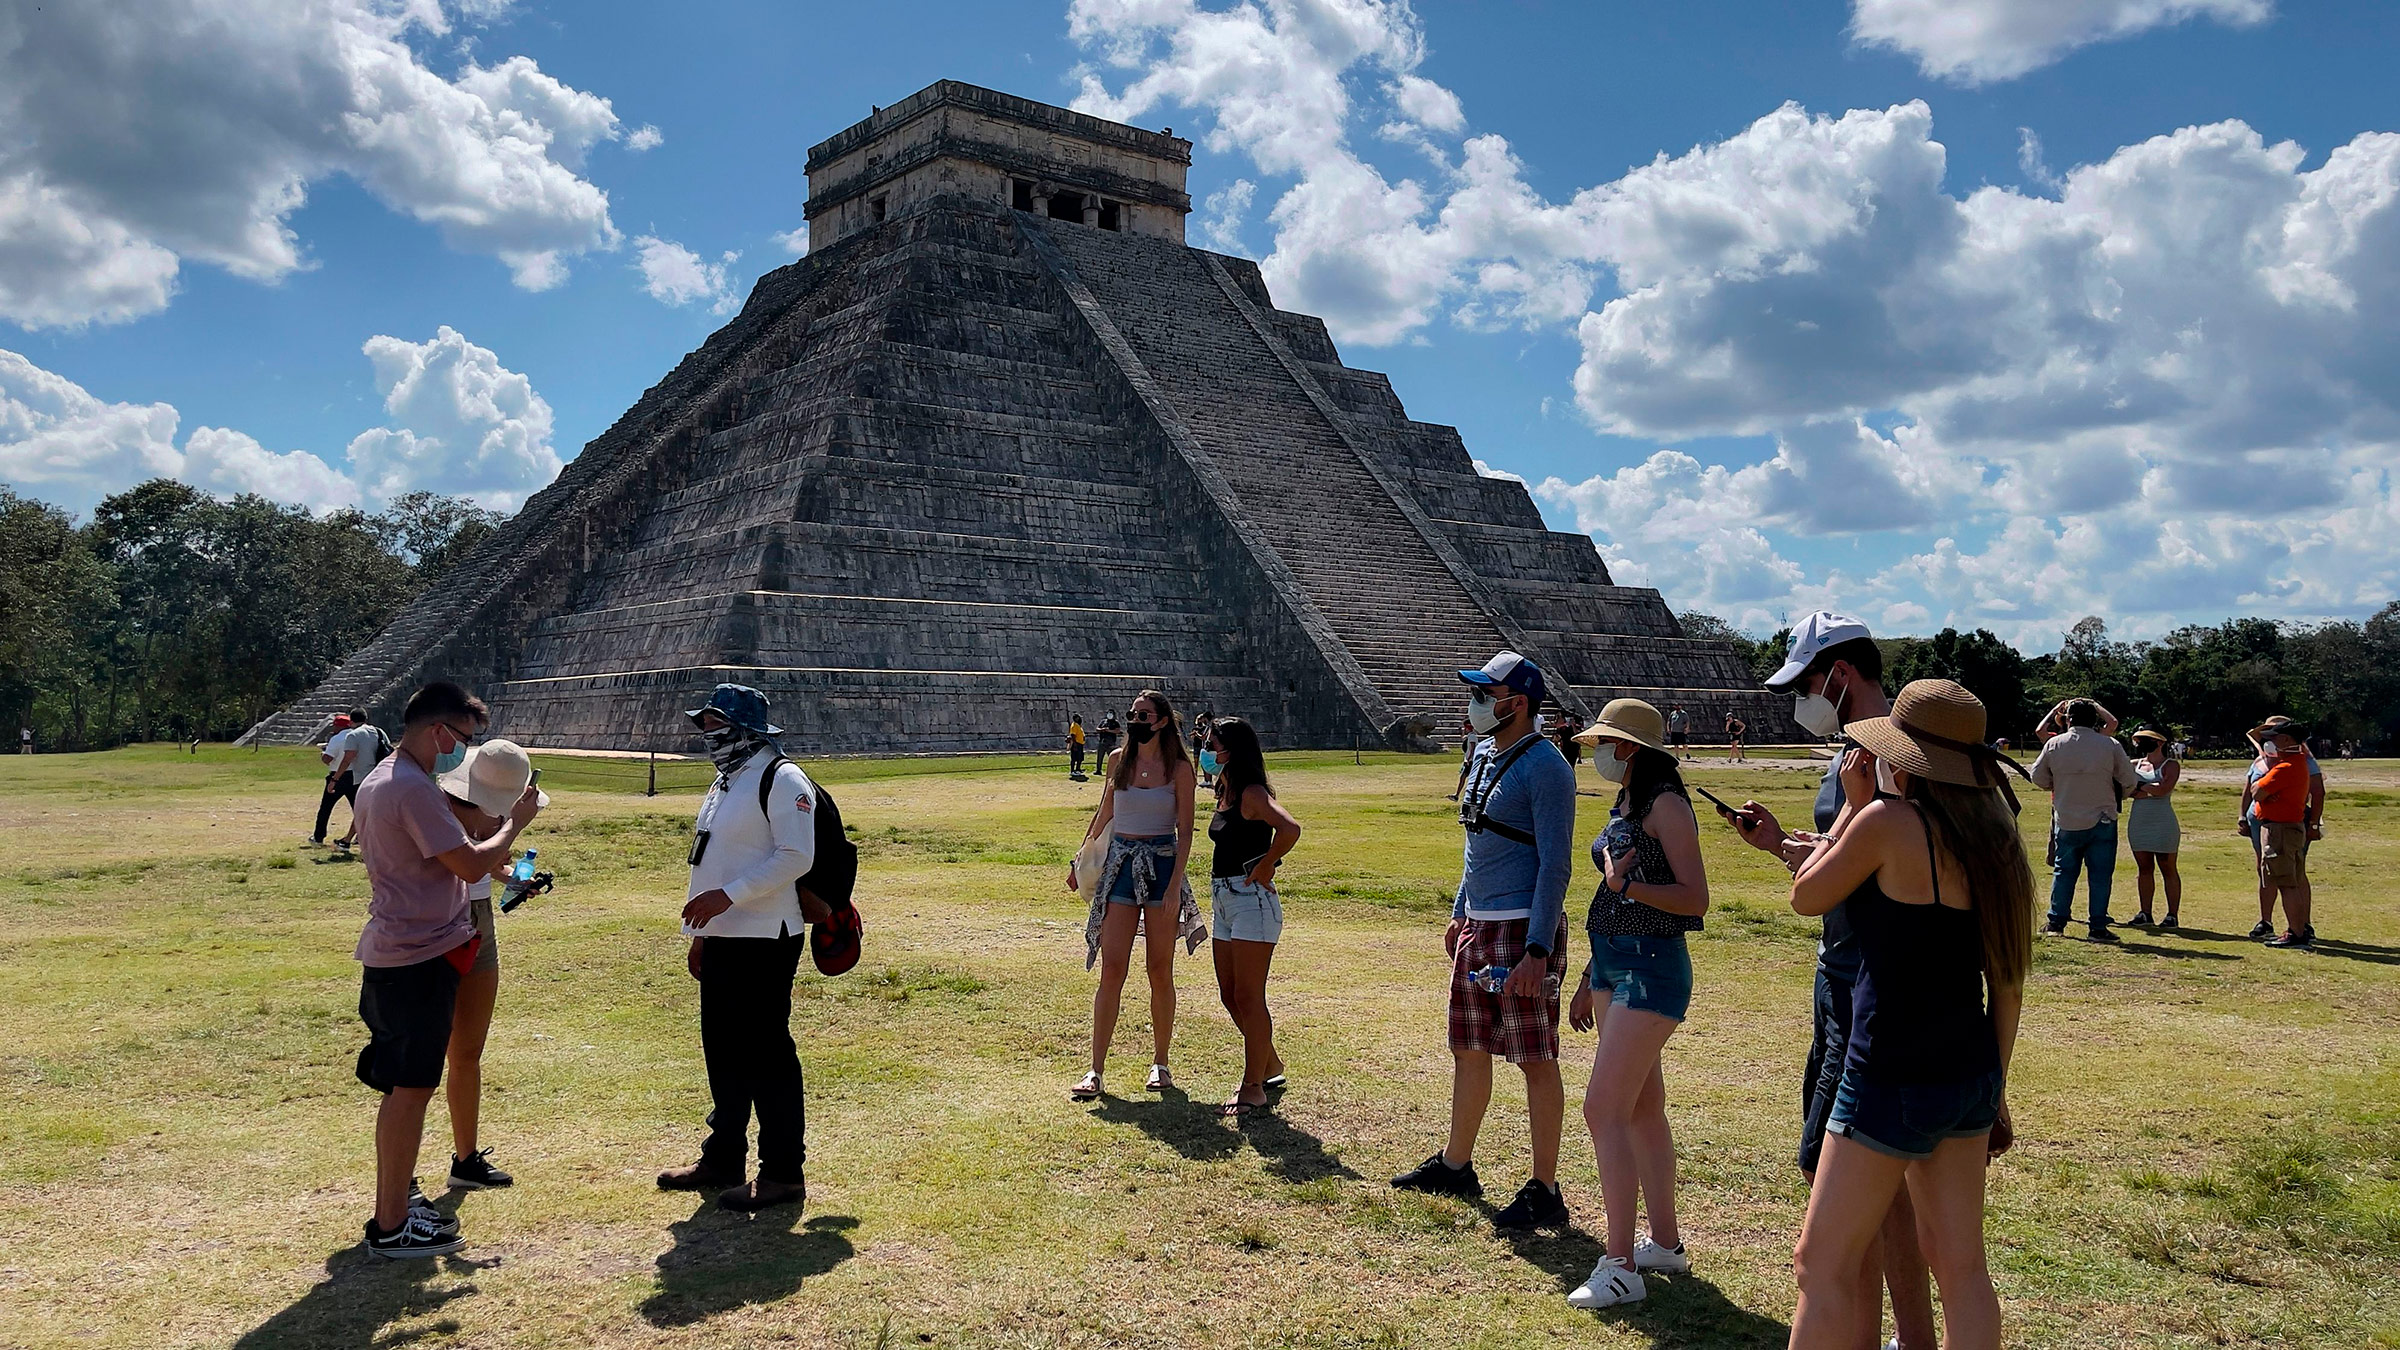 Tourists visit the Chichen Itza archaeological site in Mexico, on March 5.